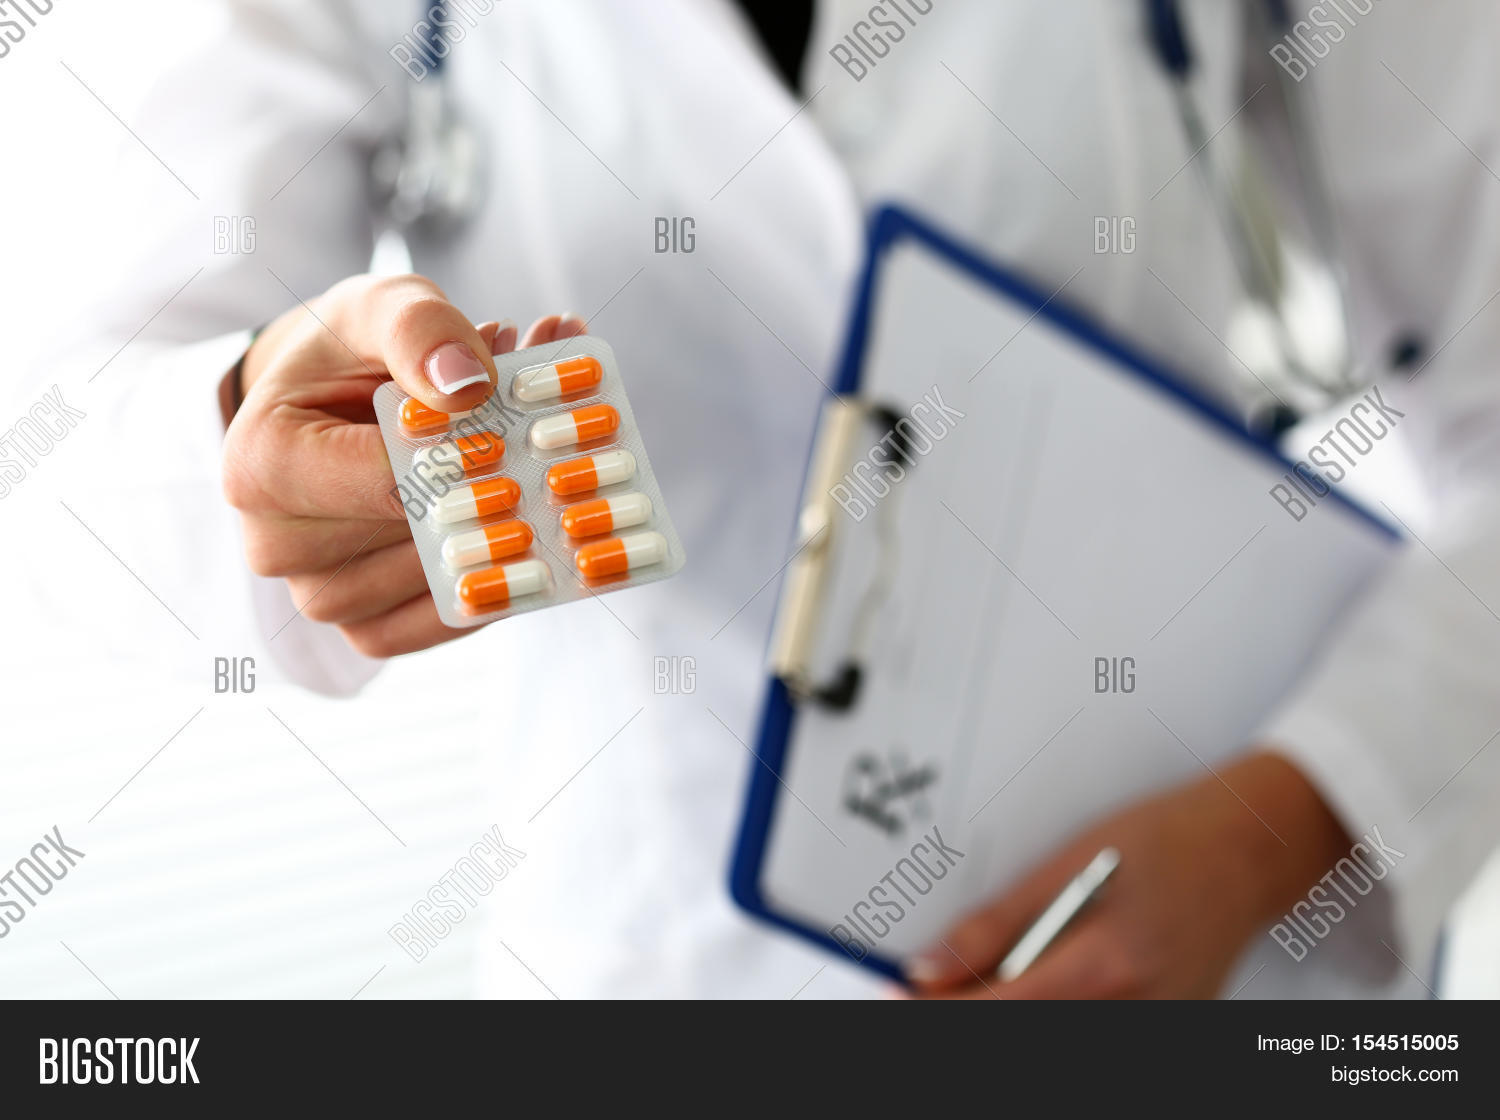 hight resolution of female doctor hand hold prescription on clipboard pad and offer to patient tablet blister panacea life save service prescribe medicament legal drug store